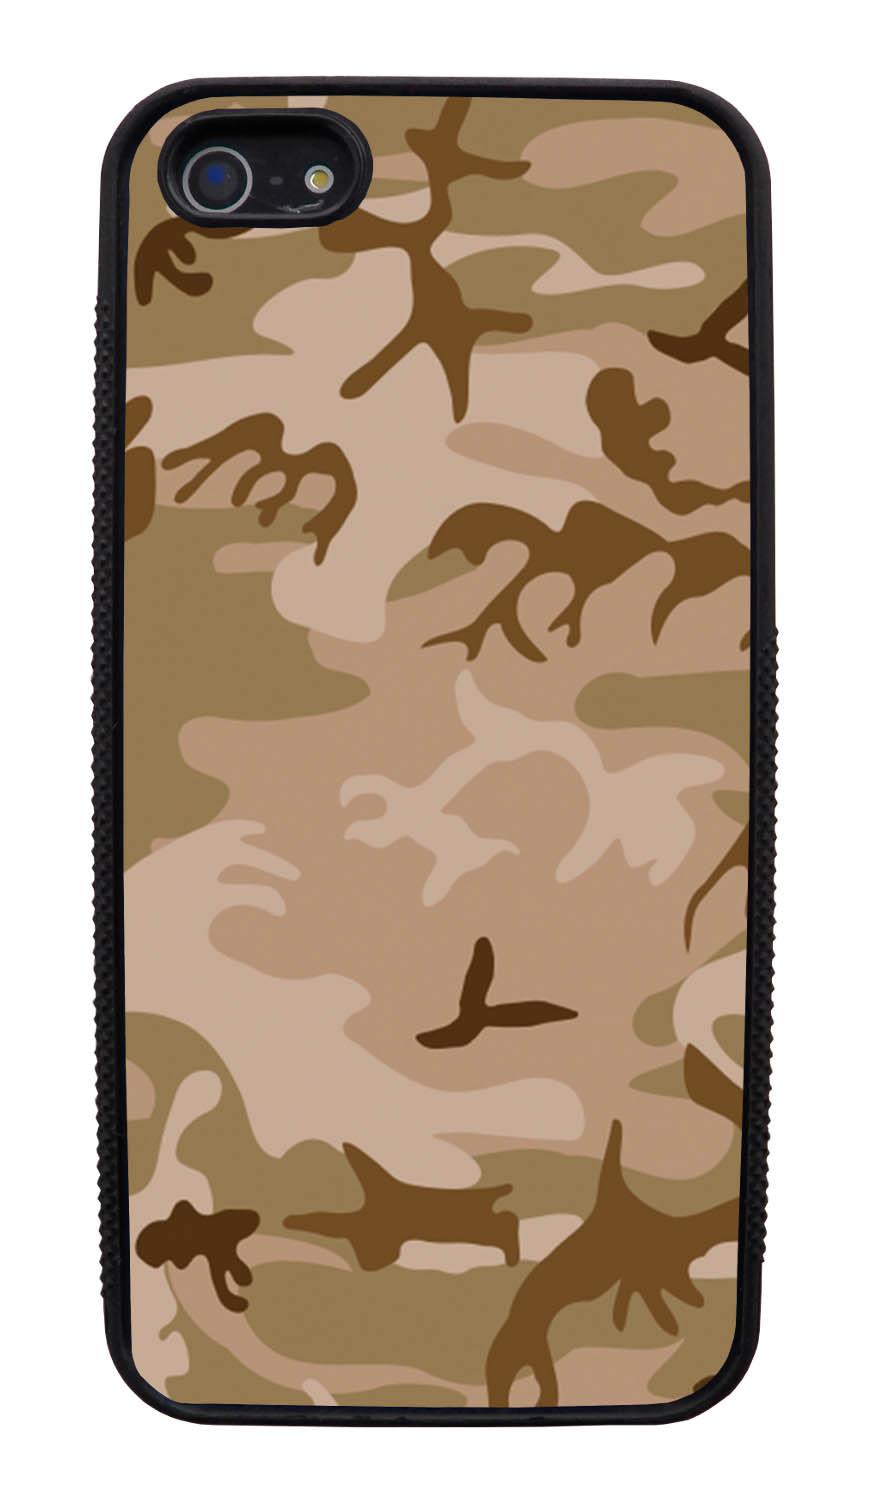 Apple iPhone 5 / 5S Camo Case - Deserts Colors - Woodland - Black Slim Rubber Case